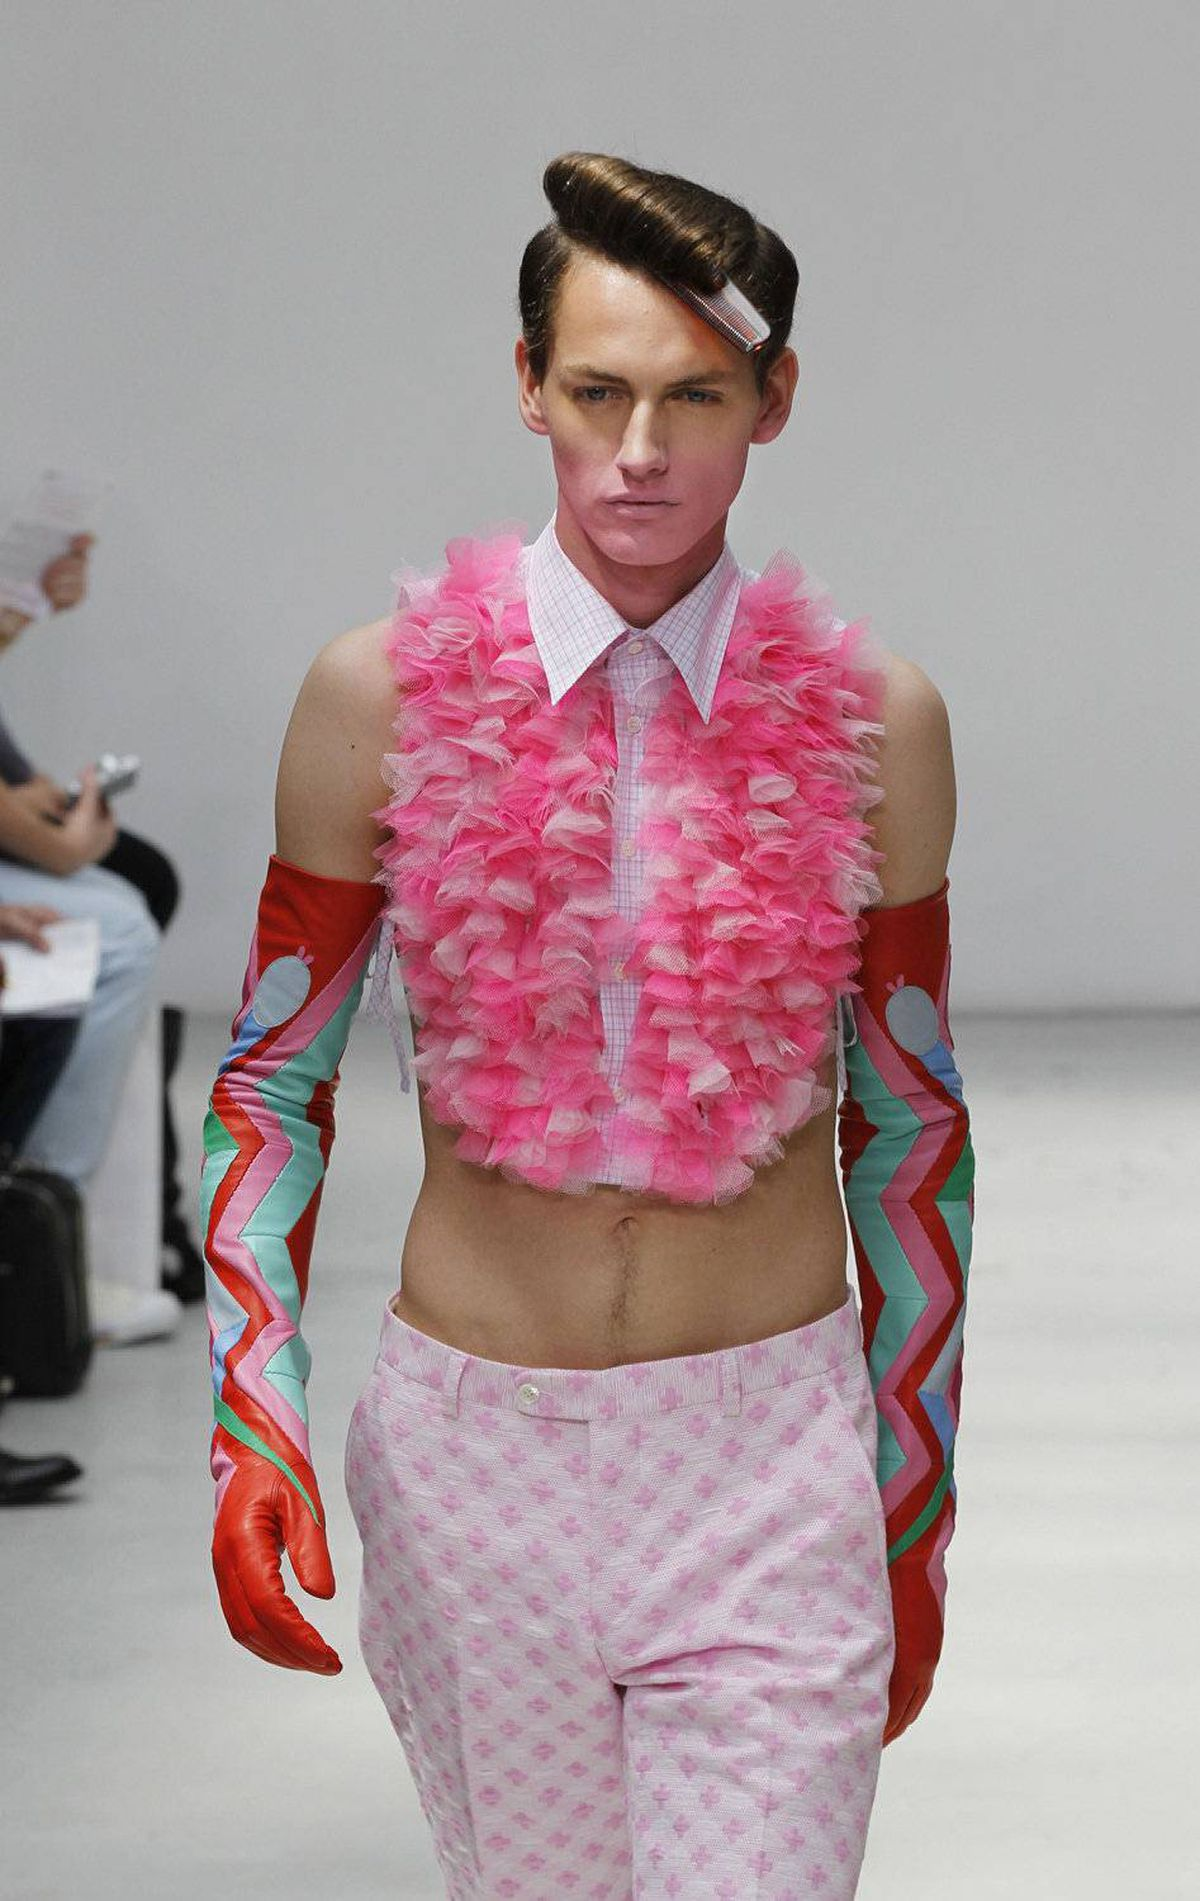 A model wears a creation by Belgian fashion designer Walter Van Beirendonck during his men's spring-summer 2012 fashion collection show on June 24, 2011 in Paris.